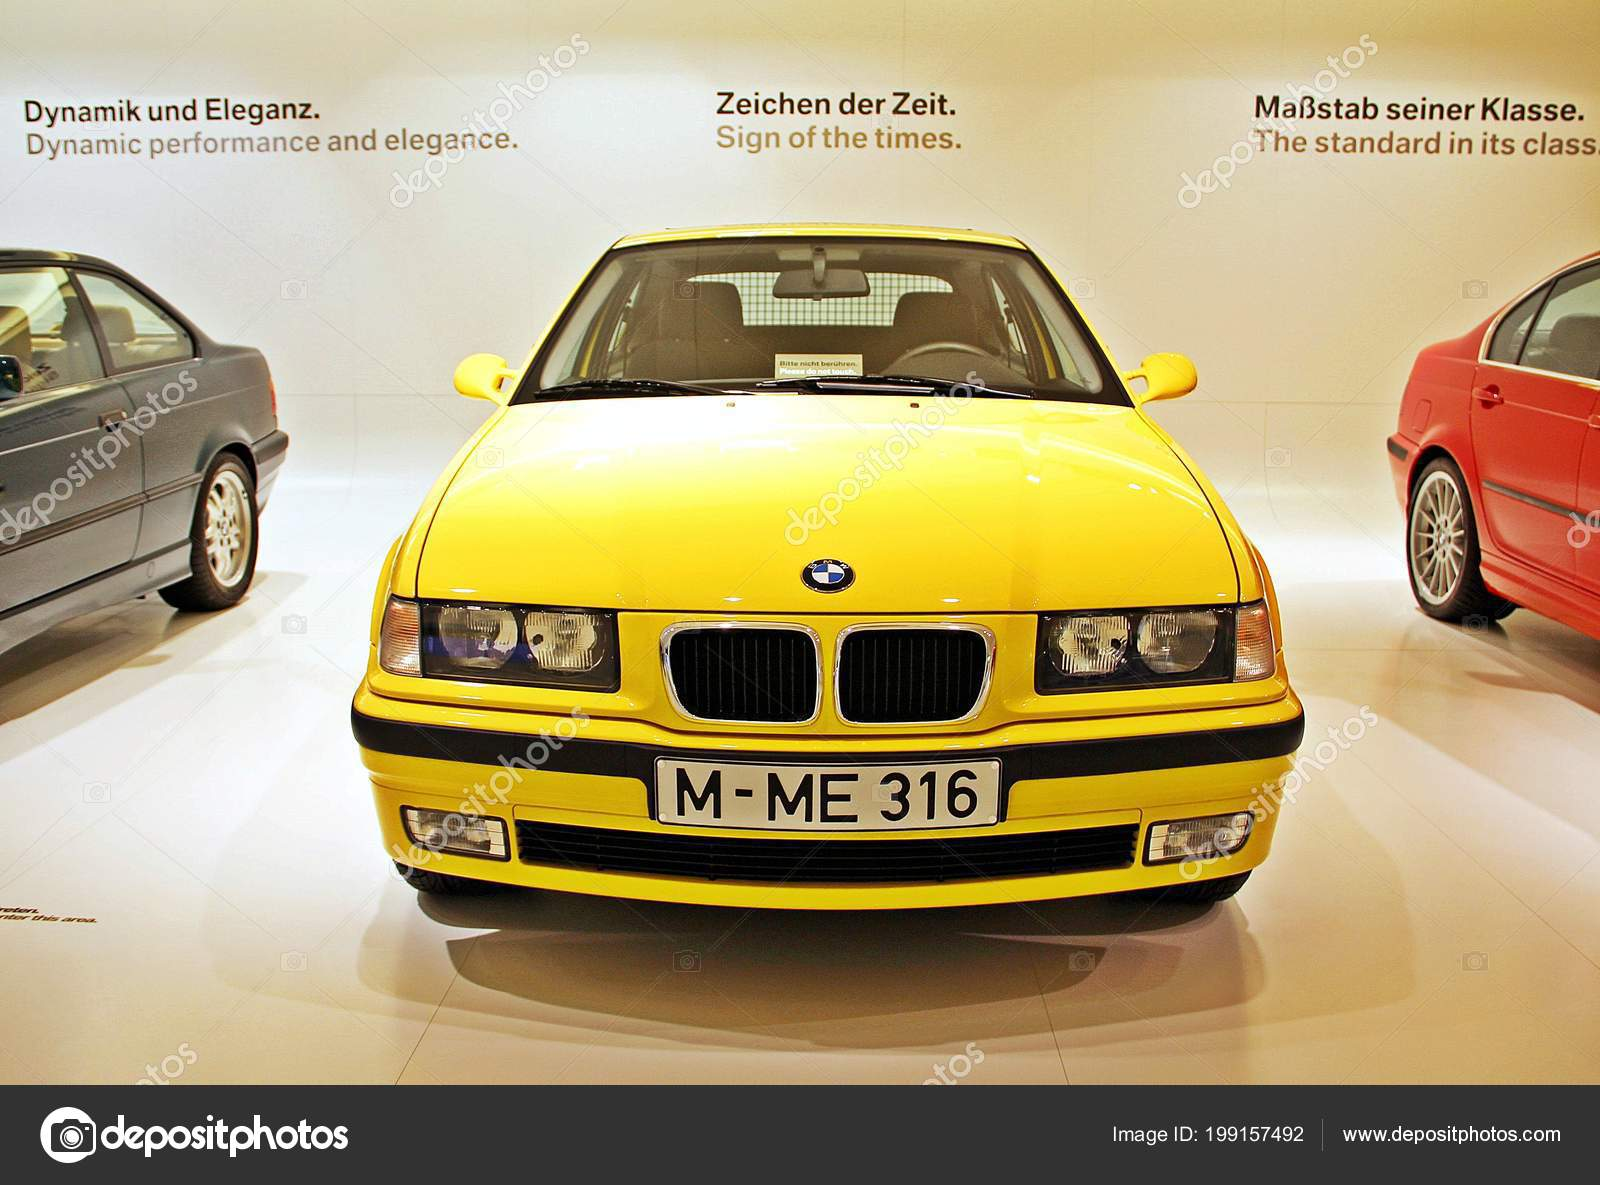 hight resolution of munich germany april 12 2012 display of bright yellow bmw 323i year 2000 at bmw welt in munich germany photo by kpoppie